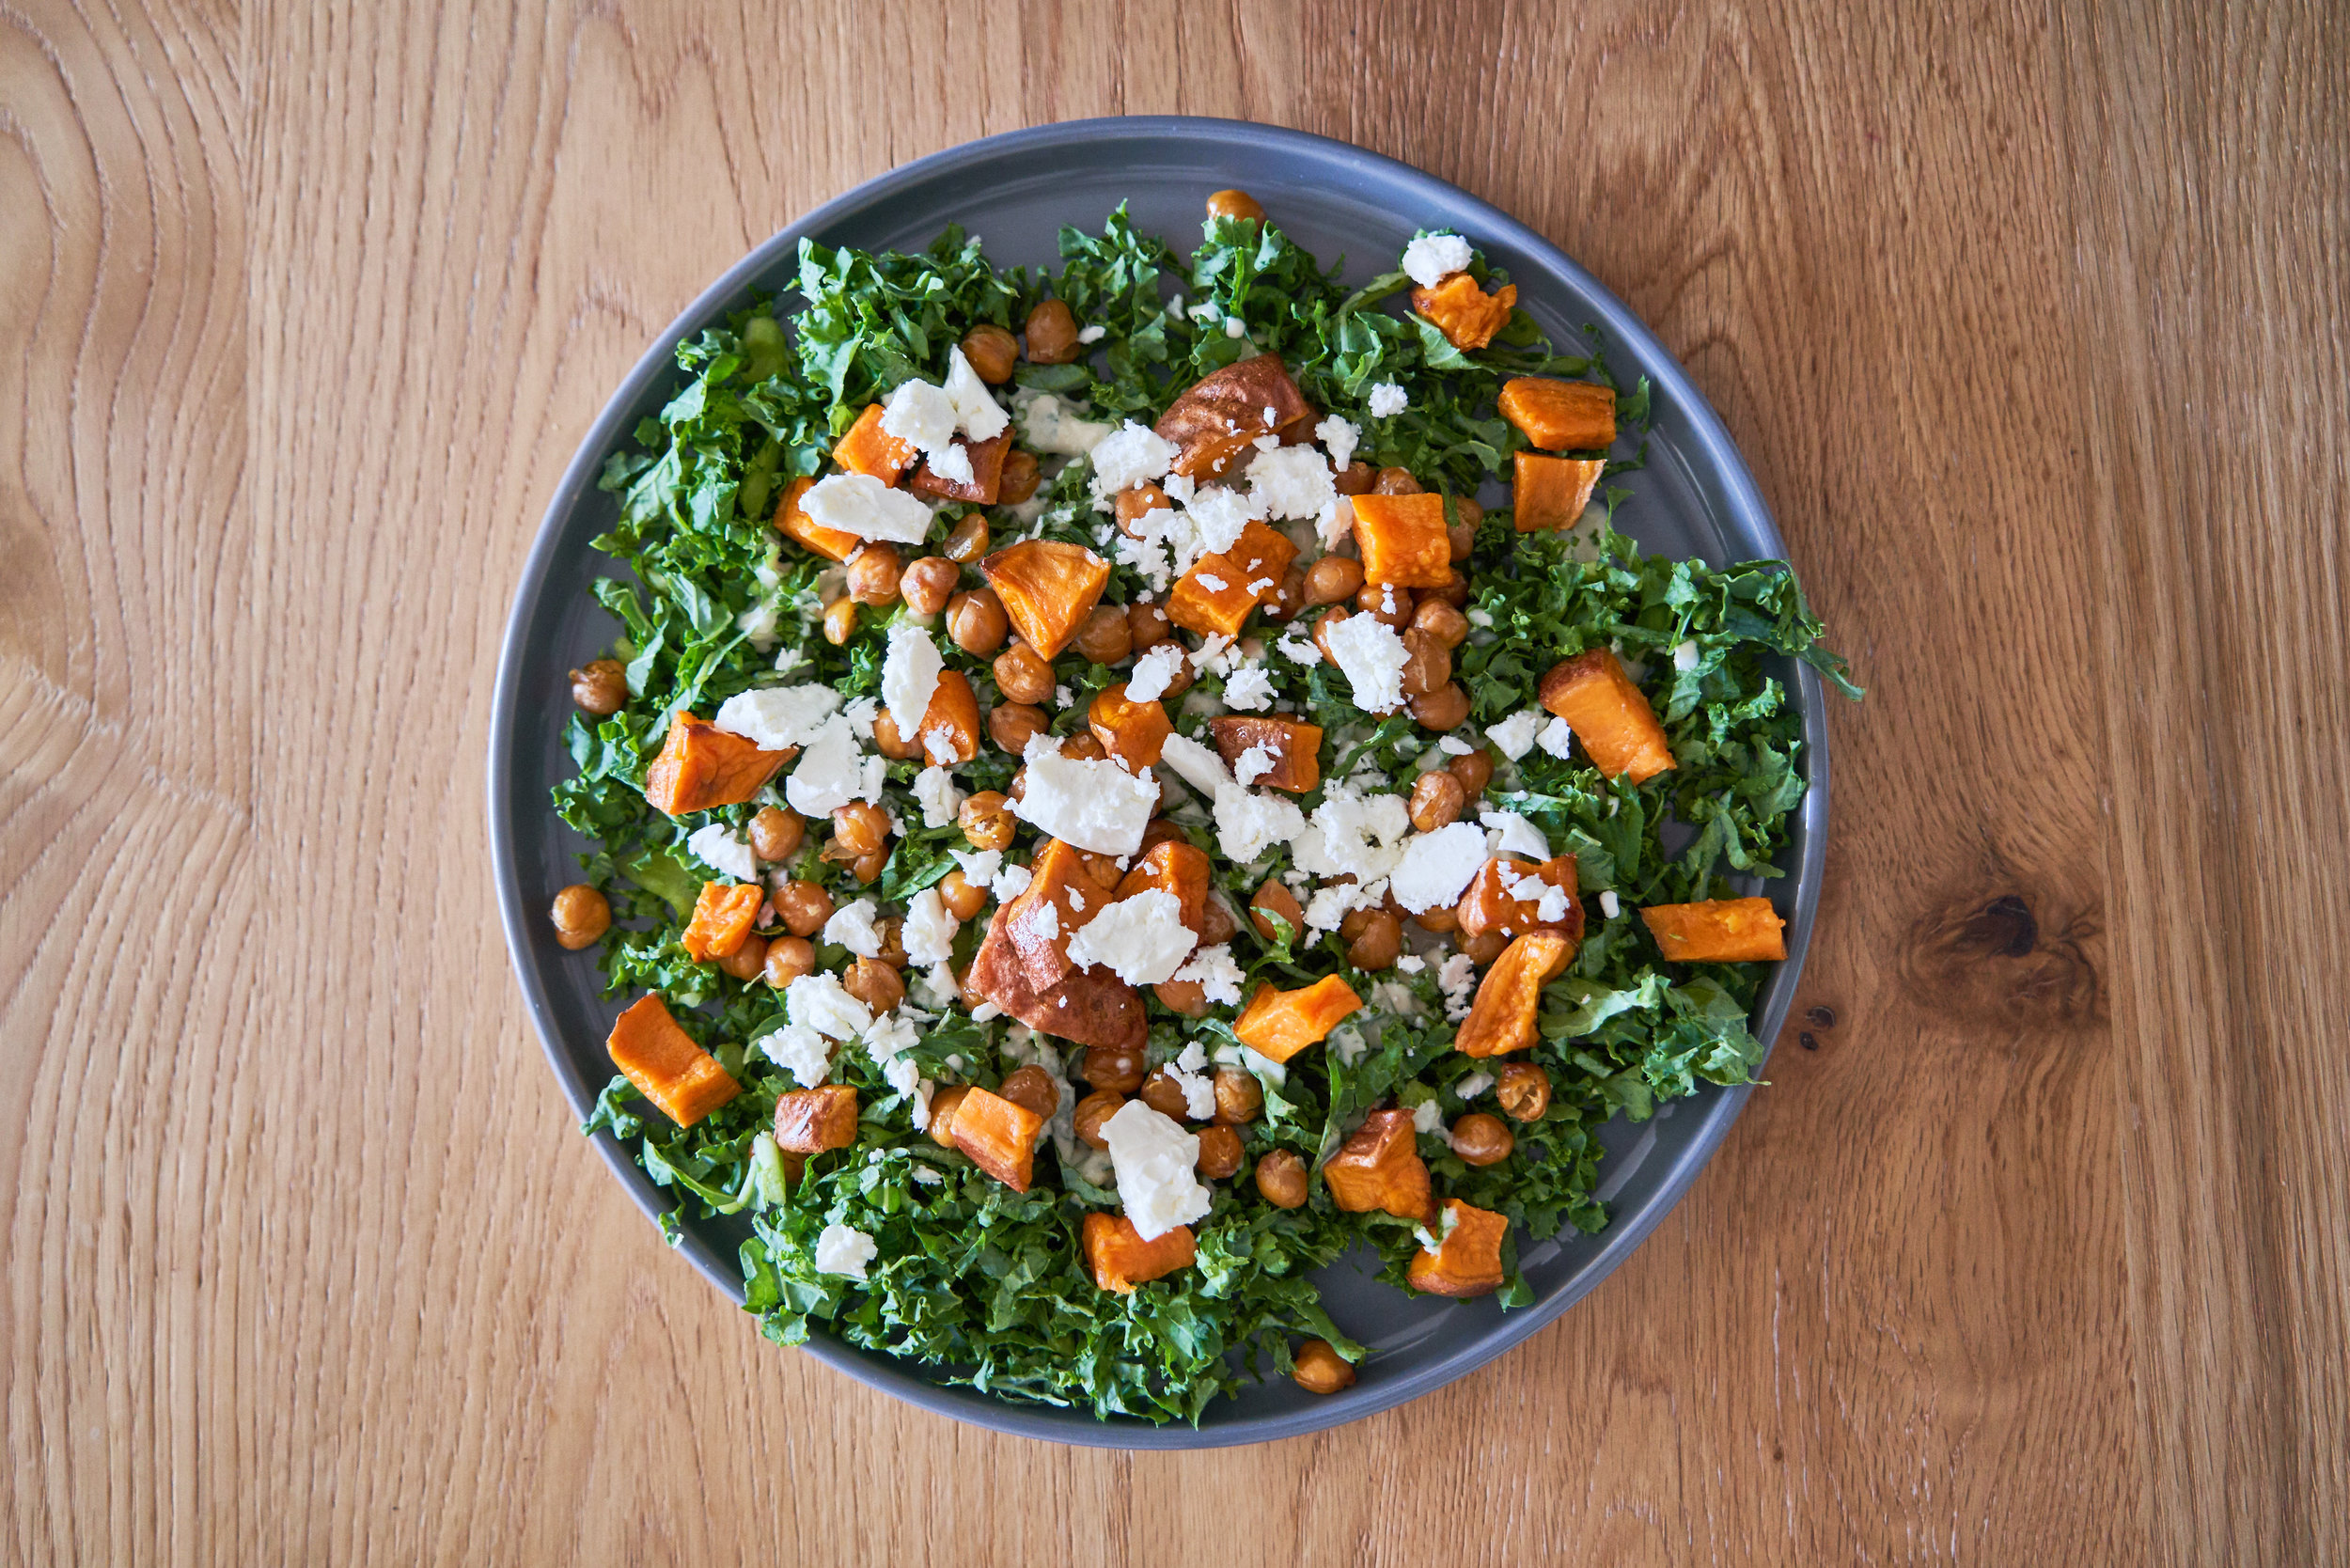 Kale Salad with Tangy Tahini Dressing - with feta | In Carina's Kitchen